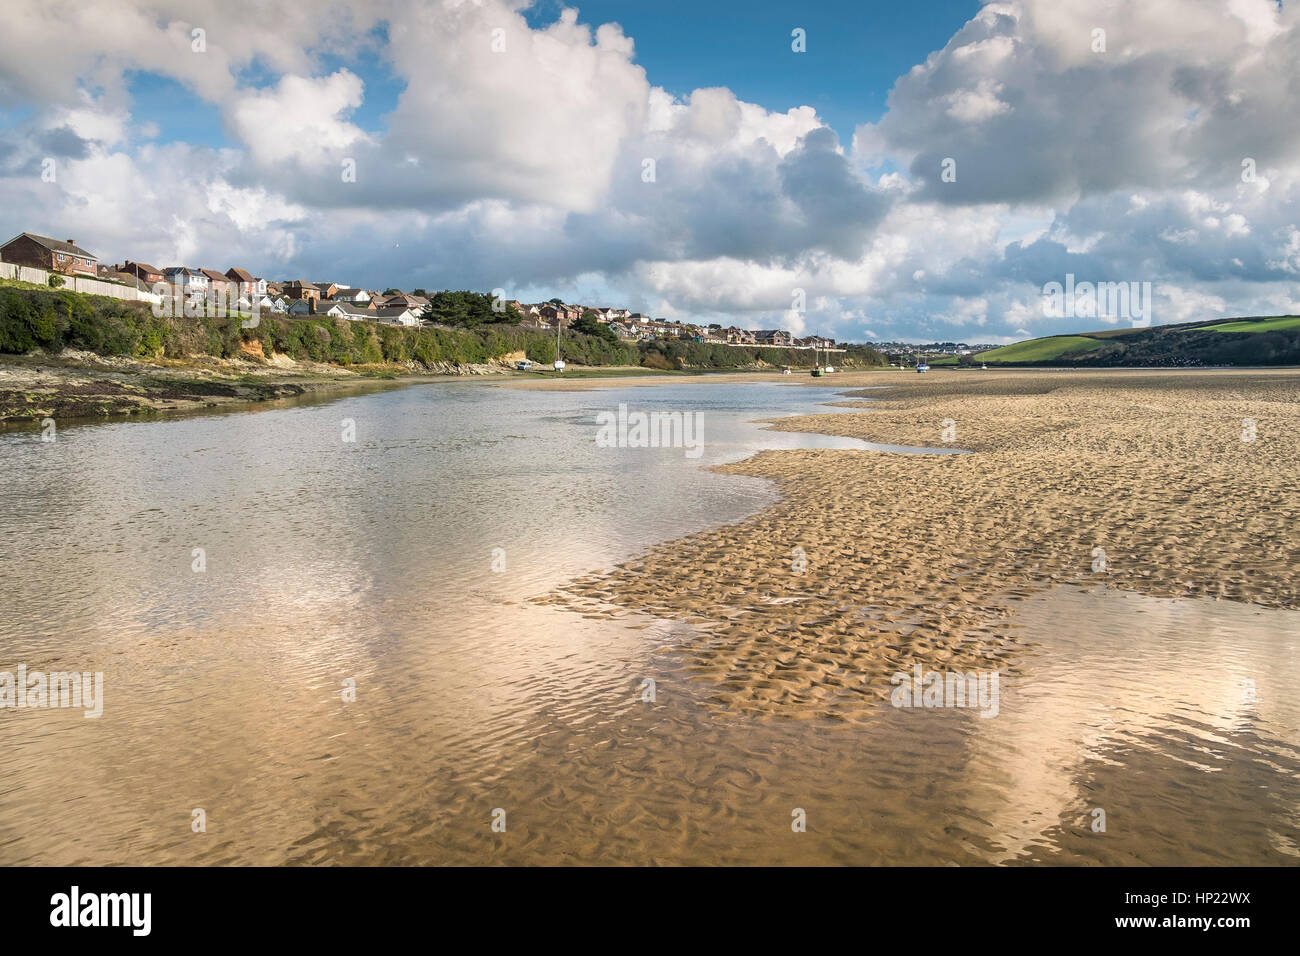 The riverbed exposed at low tide on the Gannel Estuary. Newquay, Cornwall, UK. - Stock Image